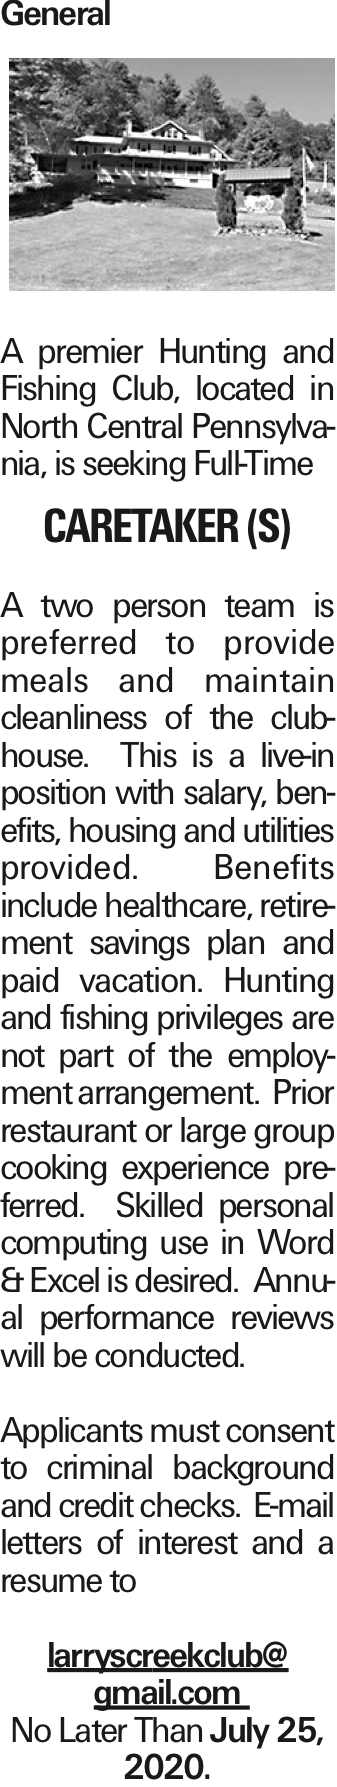 General A premier Hunting and Fishing Club, located in North Central Pennsylvania, is seeking Full-Time caretaker (s) A two person team is preferred to provide meals and maintain cleanliness of the clubhouse. This is a live-in position with salary, benefits, housing and utilities provided. Benefits include healthcare, retirement savings plan and paid vacation. Hunting and fishing privileges are not part of the employment arrangement. Prior restaurant or large group cooking experience preferred. Skilled personal computing use in Word & Excel is desired. Annual performance reviews will be conducted. Applicants must consent to criminal background and credit checks. E-mail letters of interest and a resume to larryscreekclub@ gmail.com No Later Than July 25, 2020. As published in the Press Enterprise.